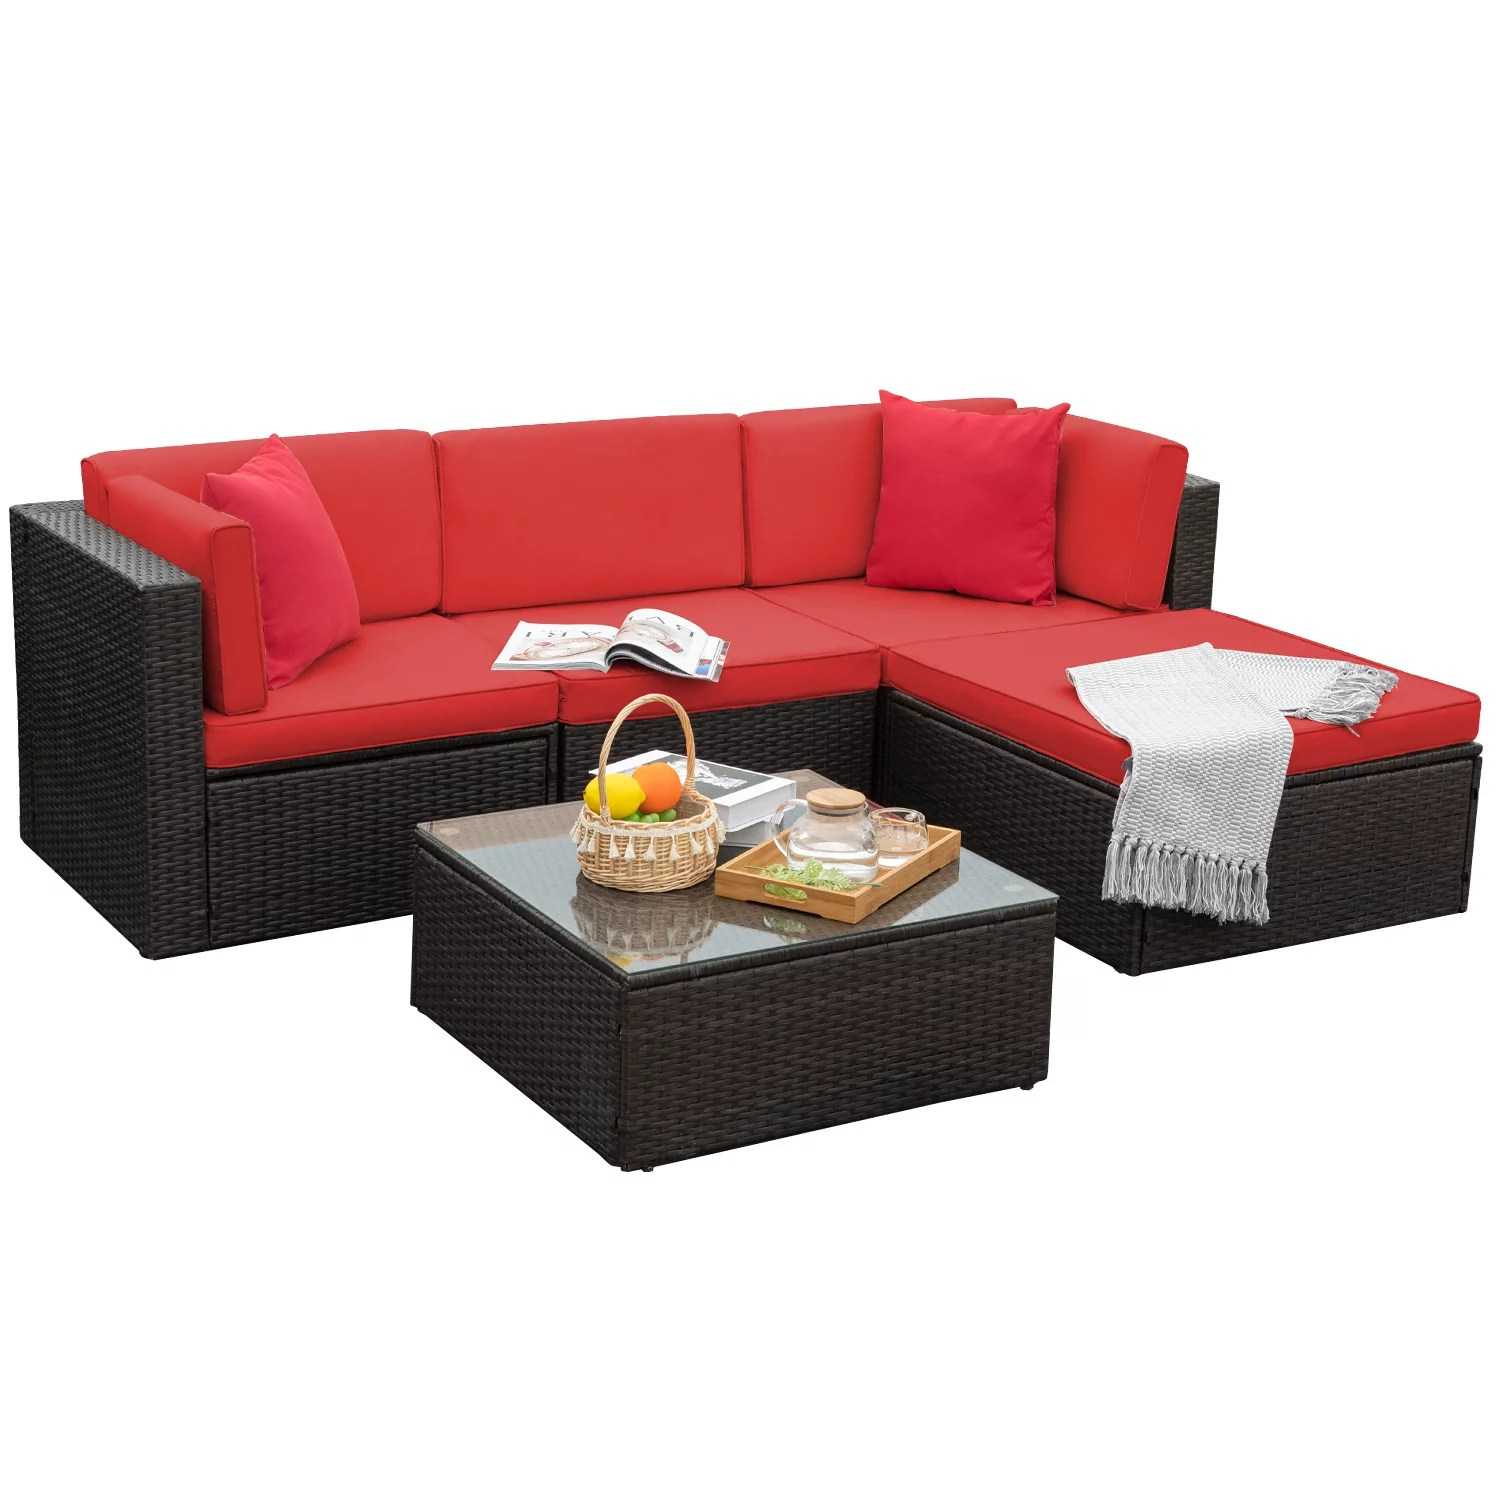 walnew 5 pieces outdoor patio sectional sofa sets all weather pe rattan conversation sets with glass table red walmart com